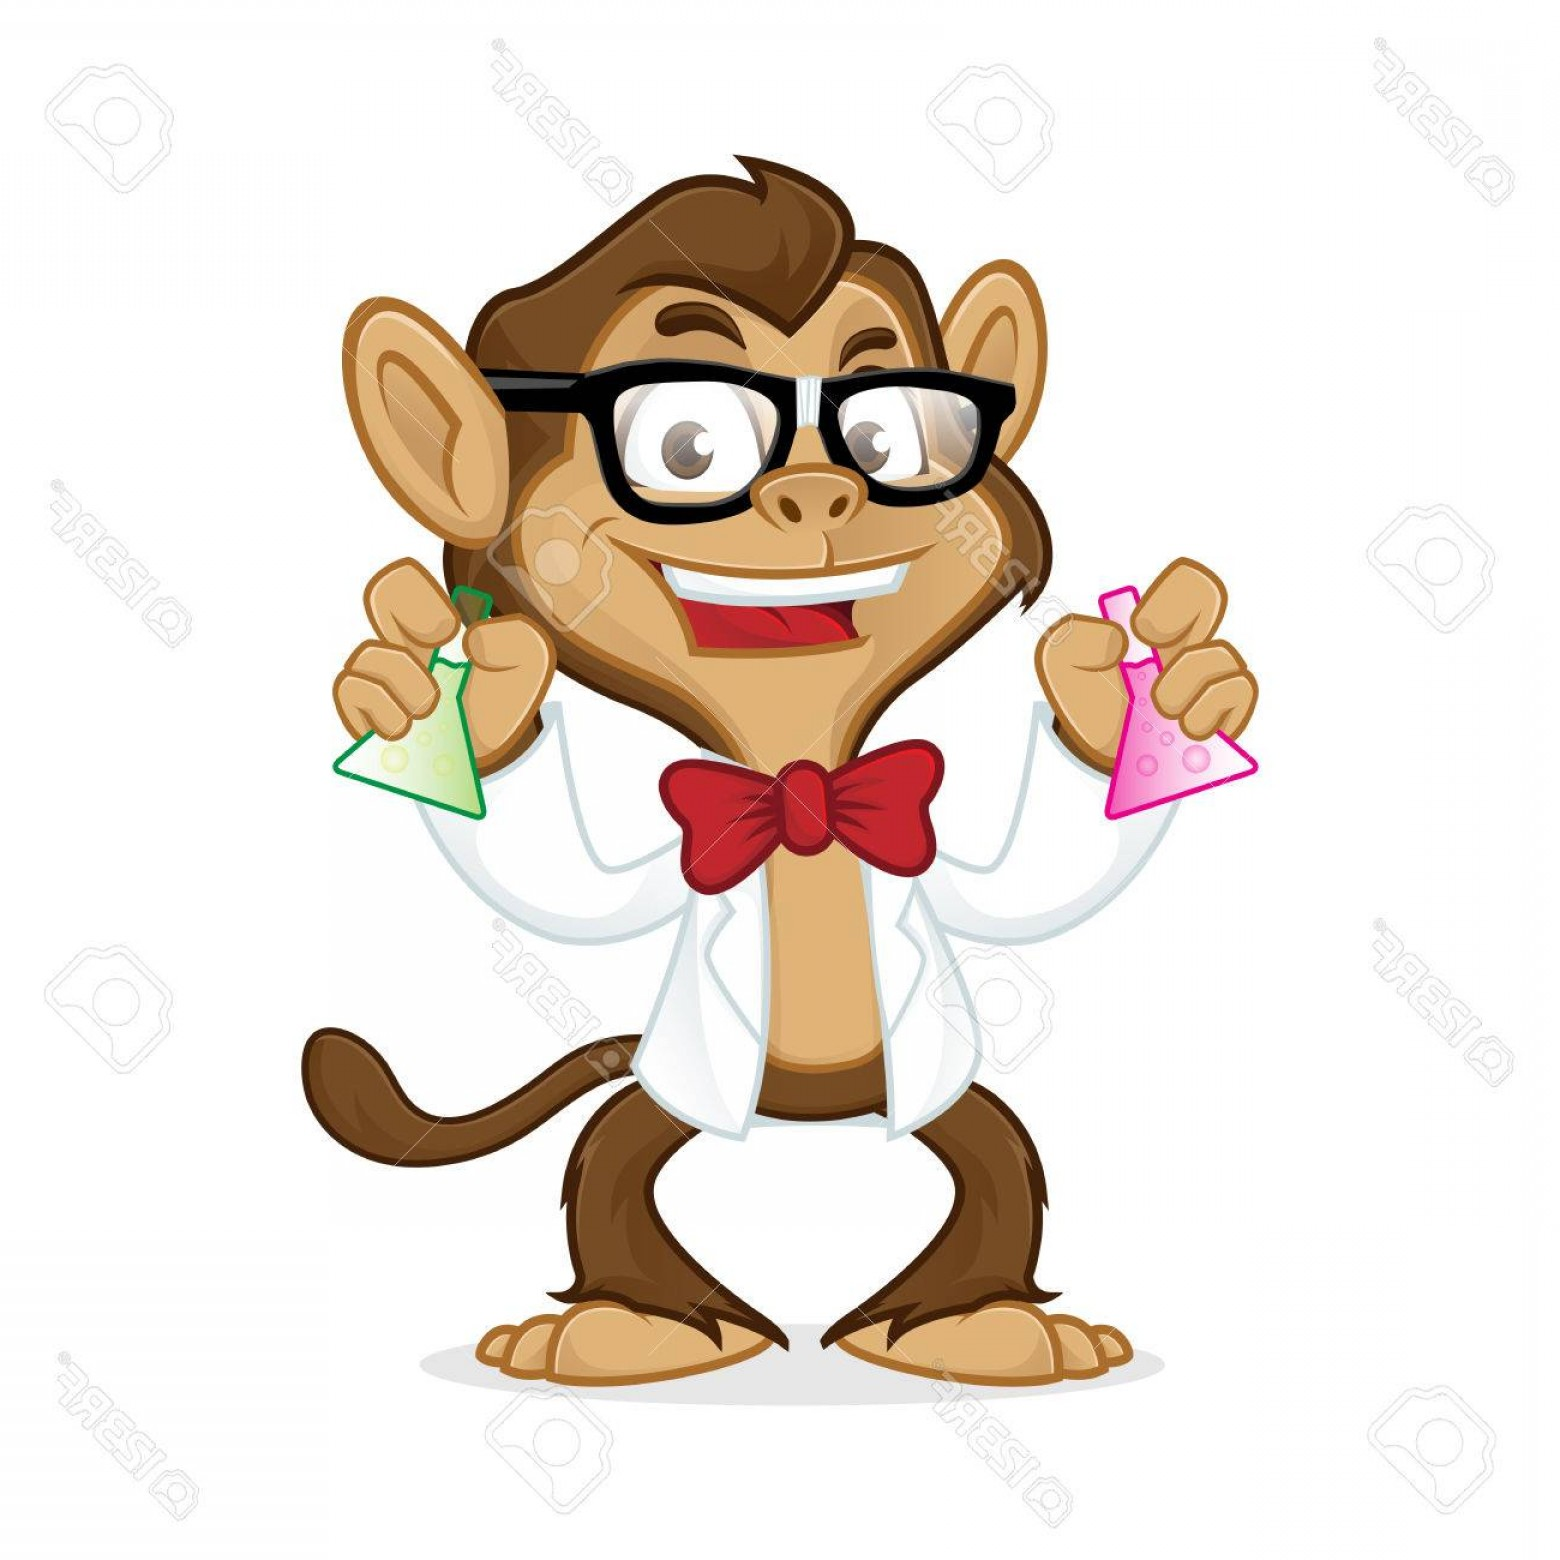 Lab Coat Cartoon Vector: Photostock Vector Chimp Cartoon Mascot Wearing Lab Coat And Glasses Isolated In White Background